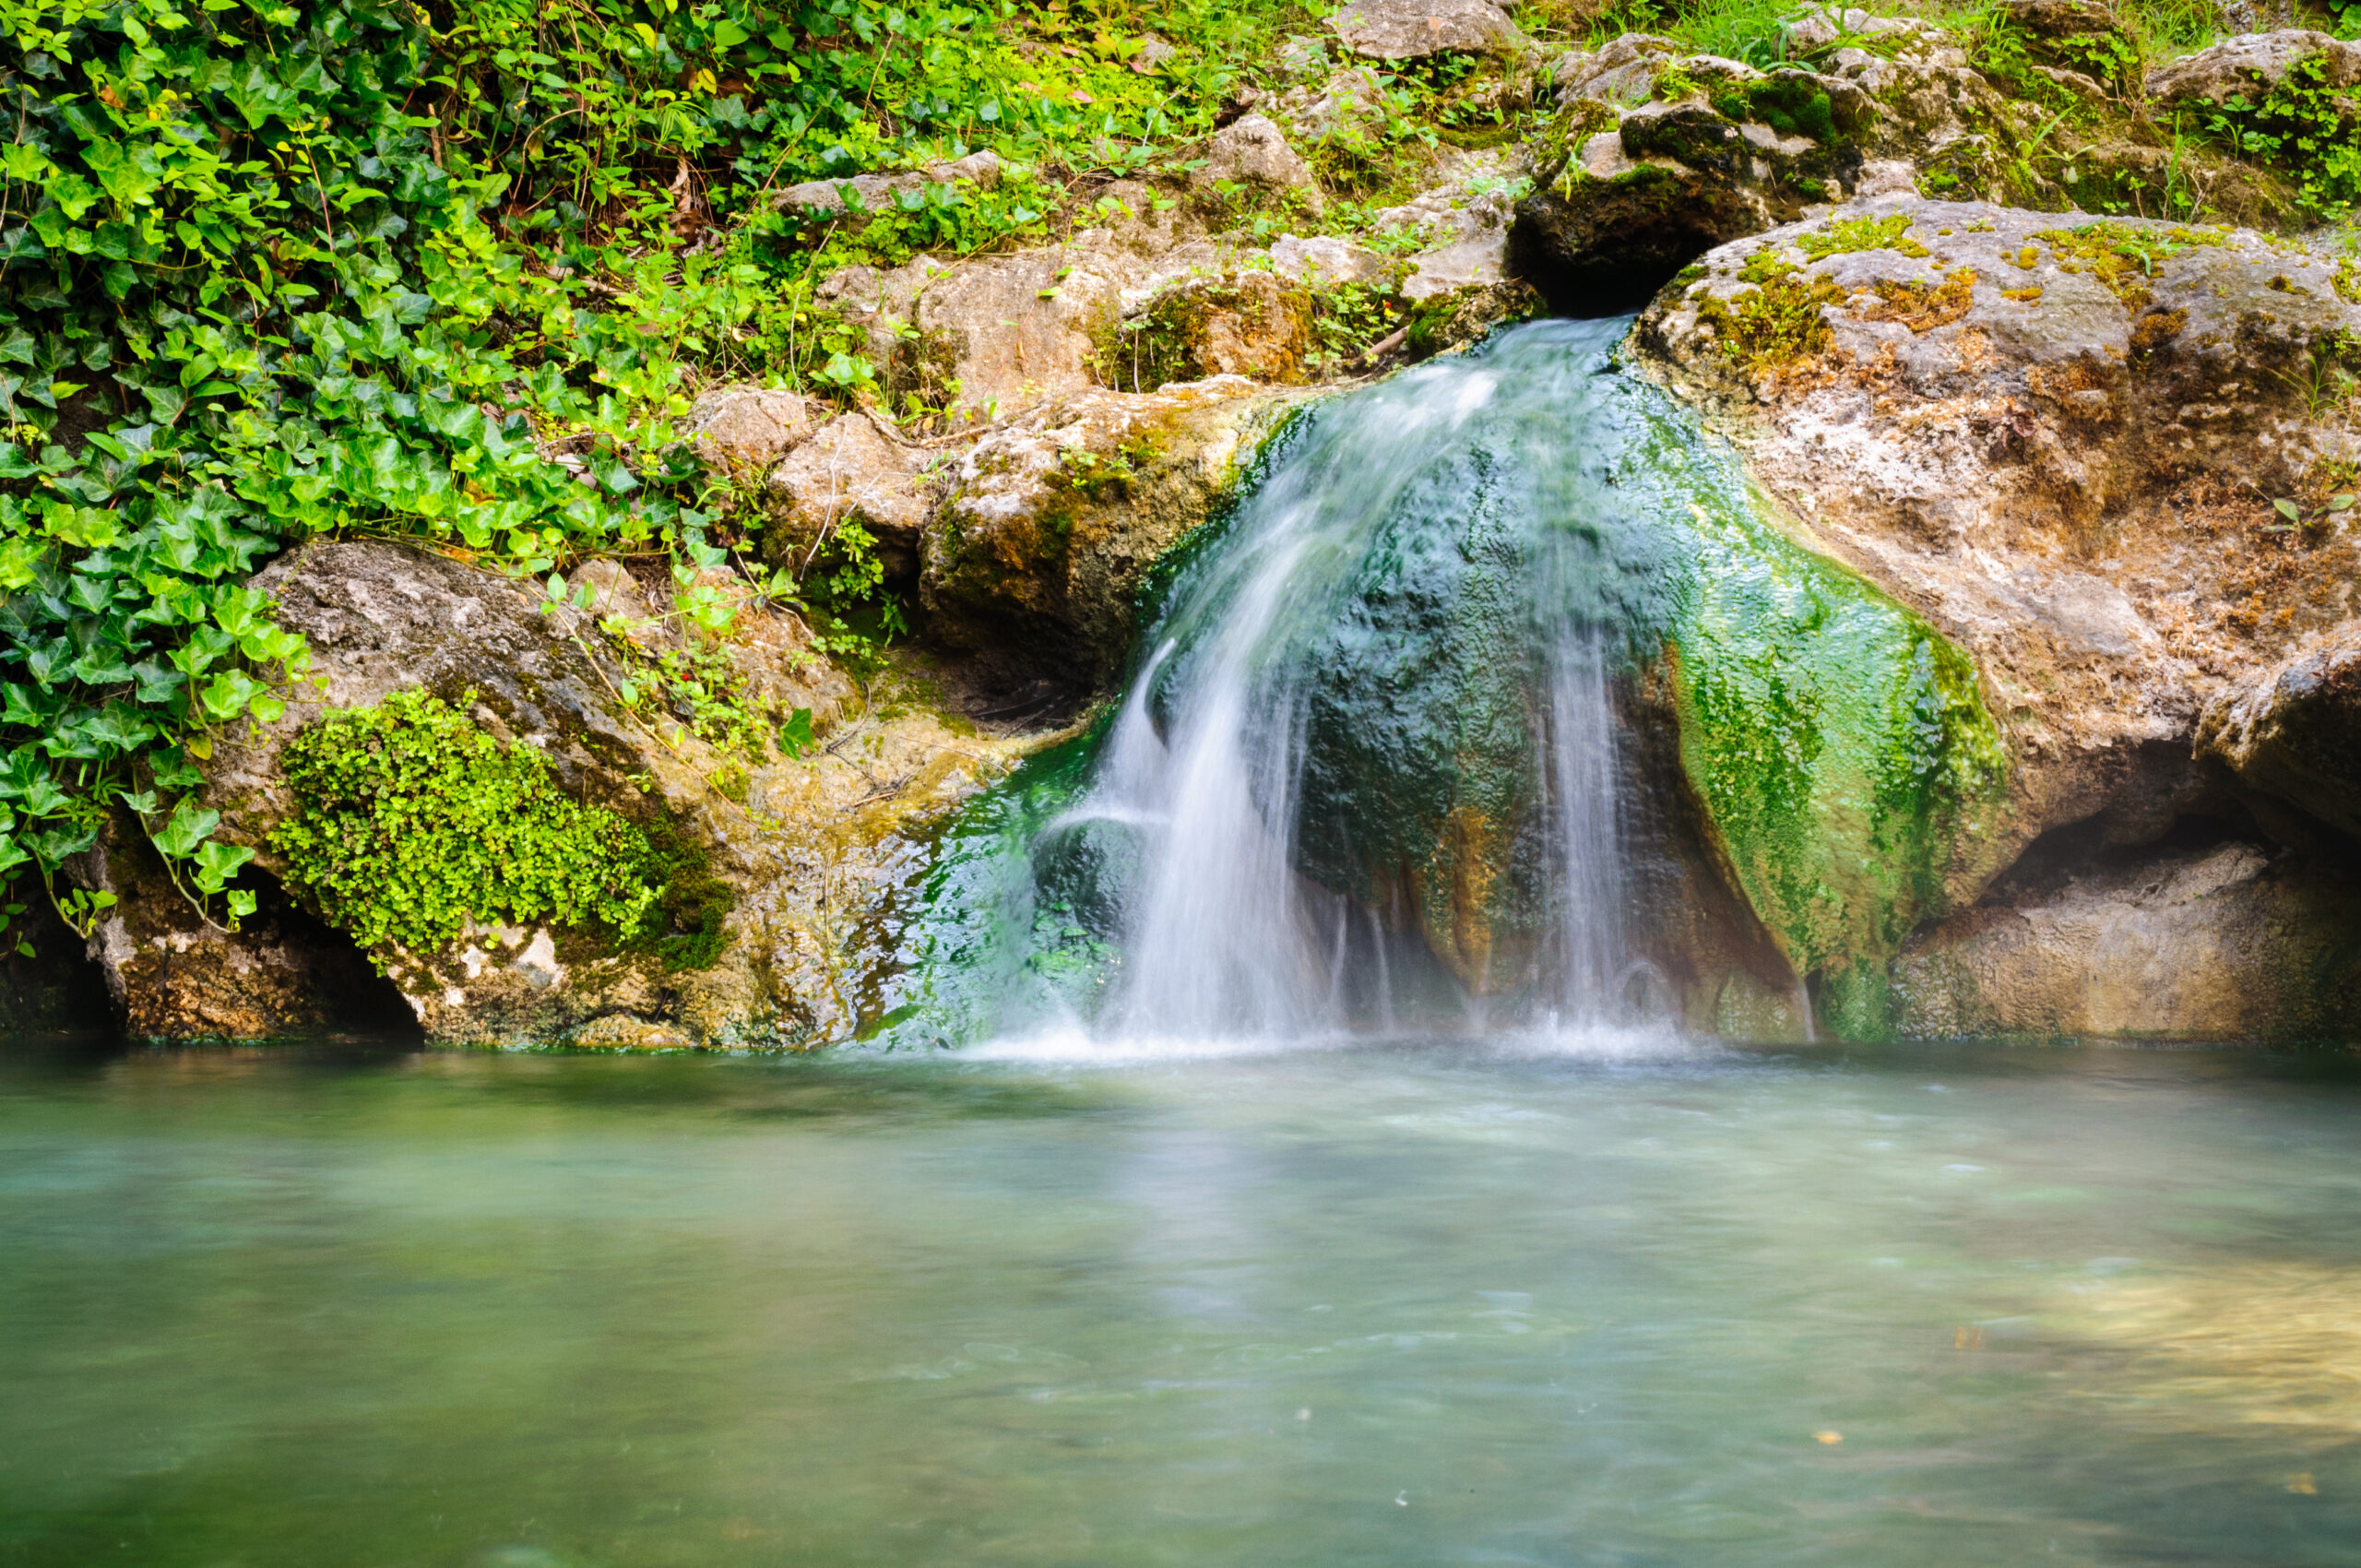 Waterfall at Hot Springs National Park; Courtesy Zack Frank/Shutterstock